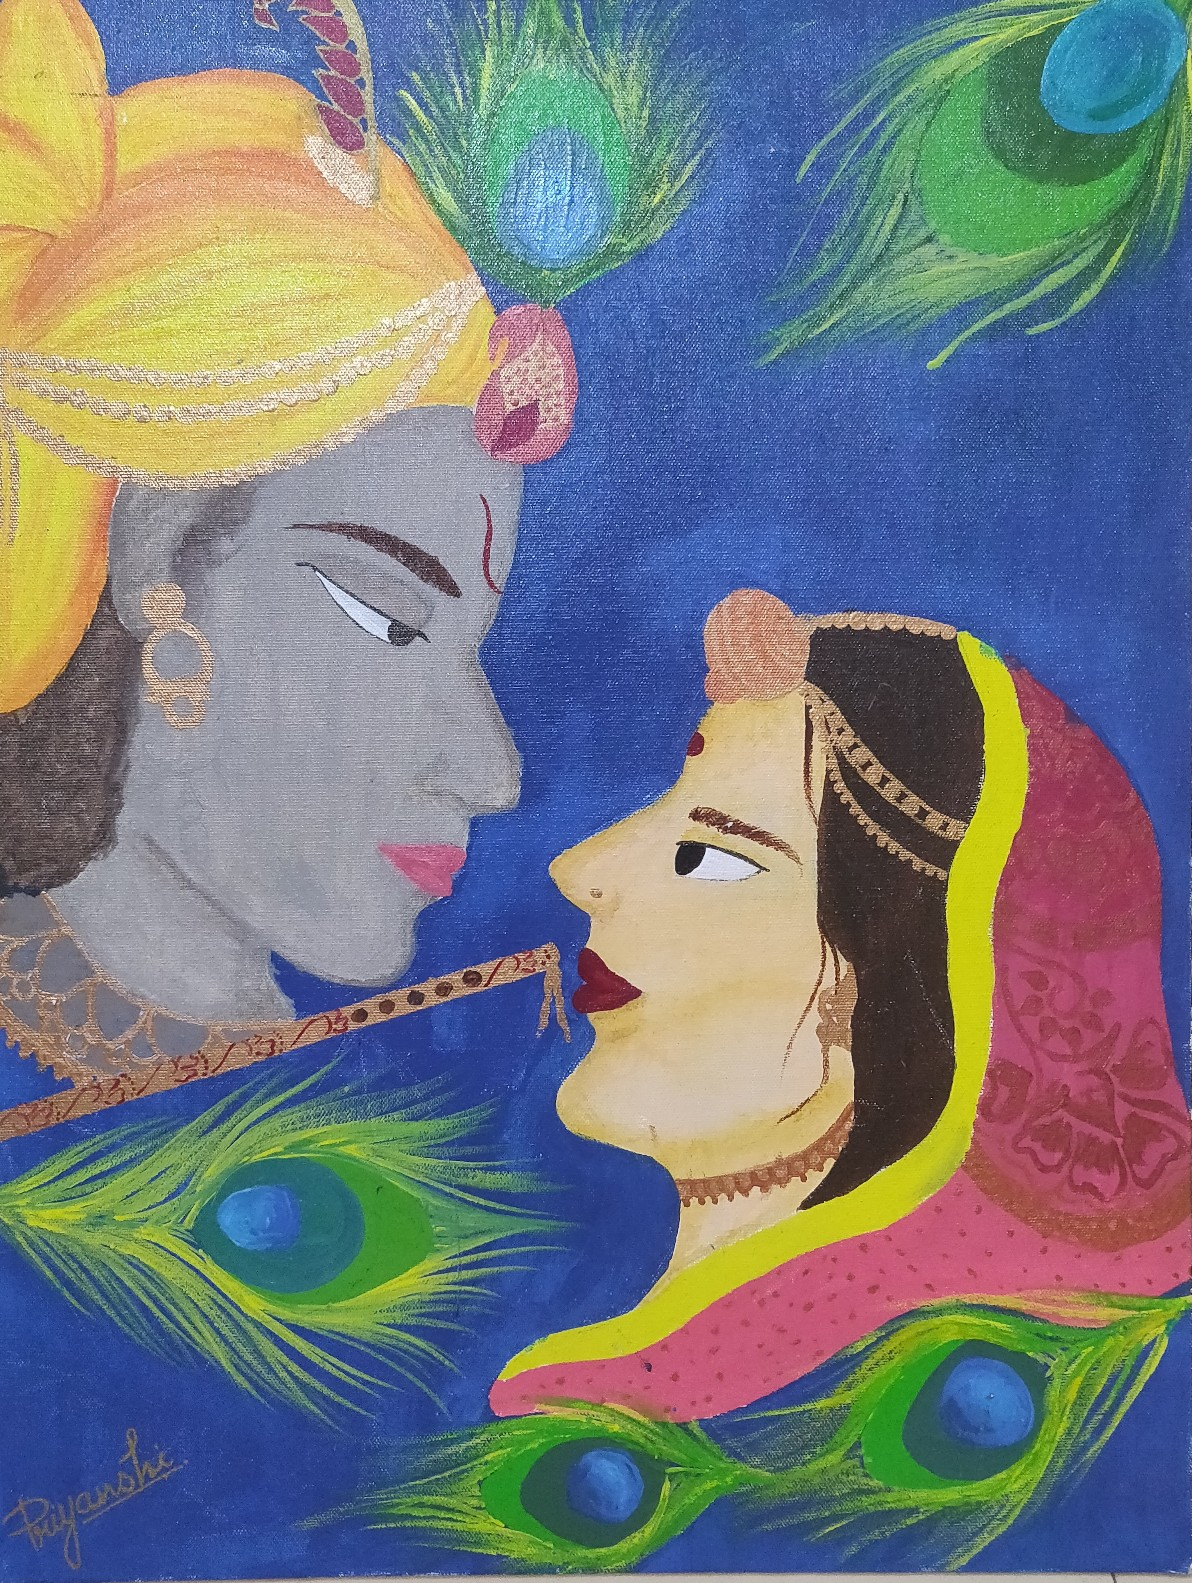 Radha Krishna-paintings Showflipper